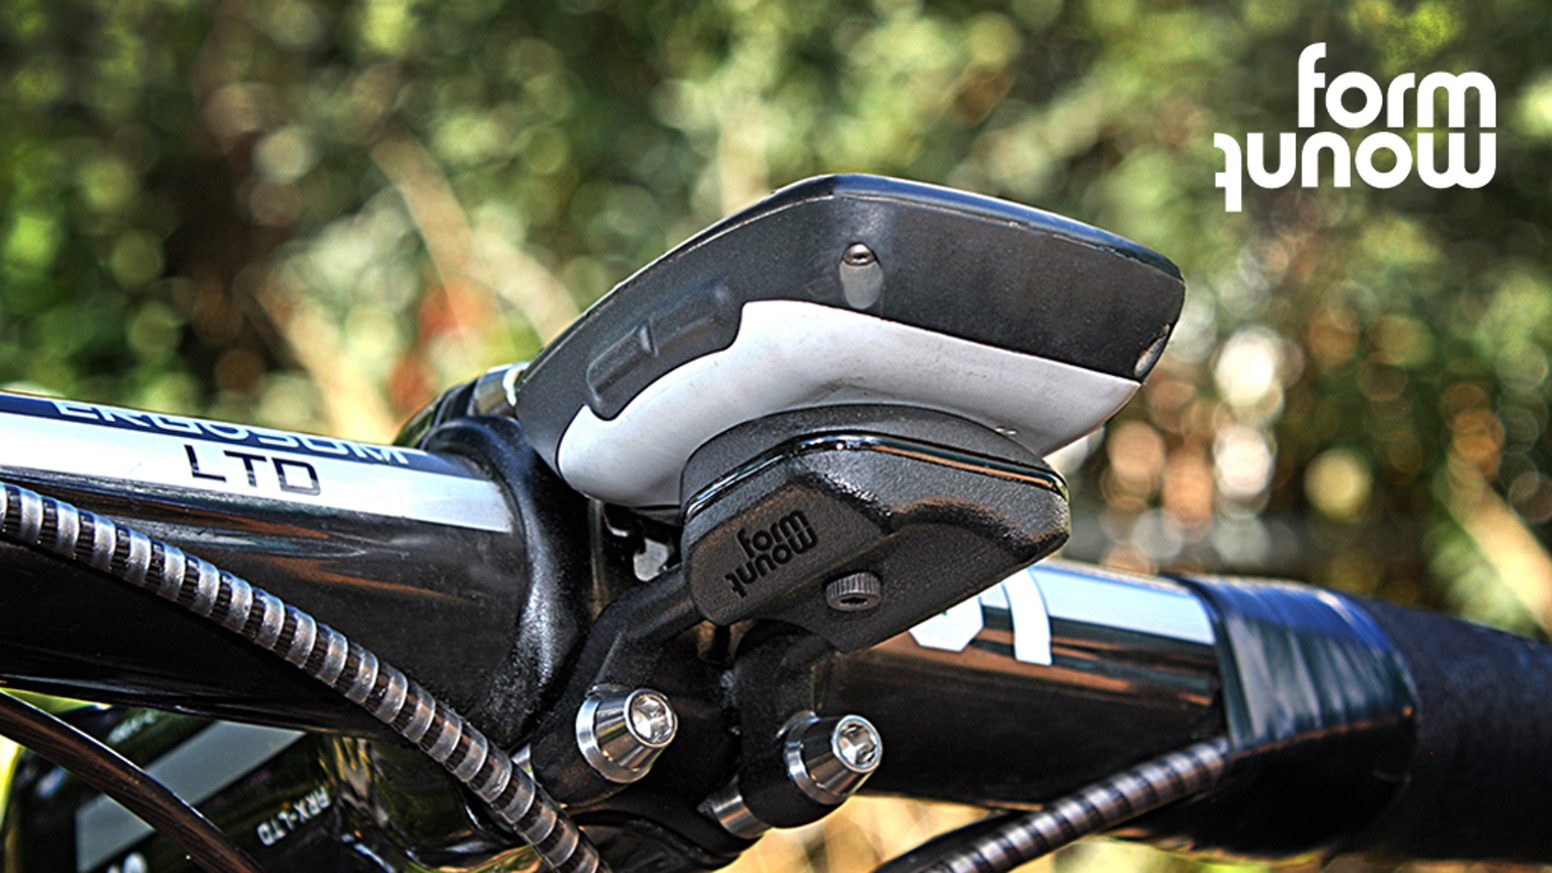 Form Mount, a direct stem bicycle mounting system for Garmin computers, GoPro, Cameras, Phones, and Lights, with combination ability.